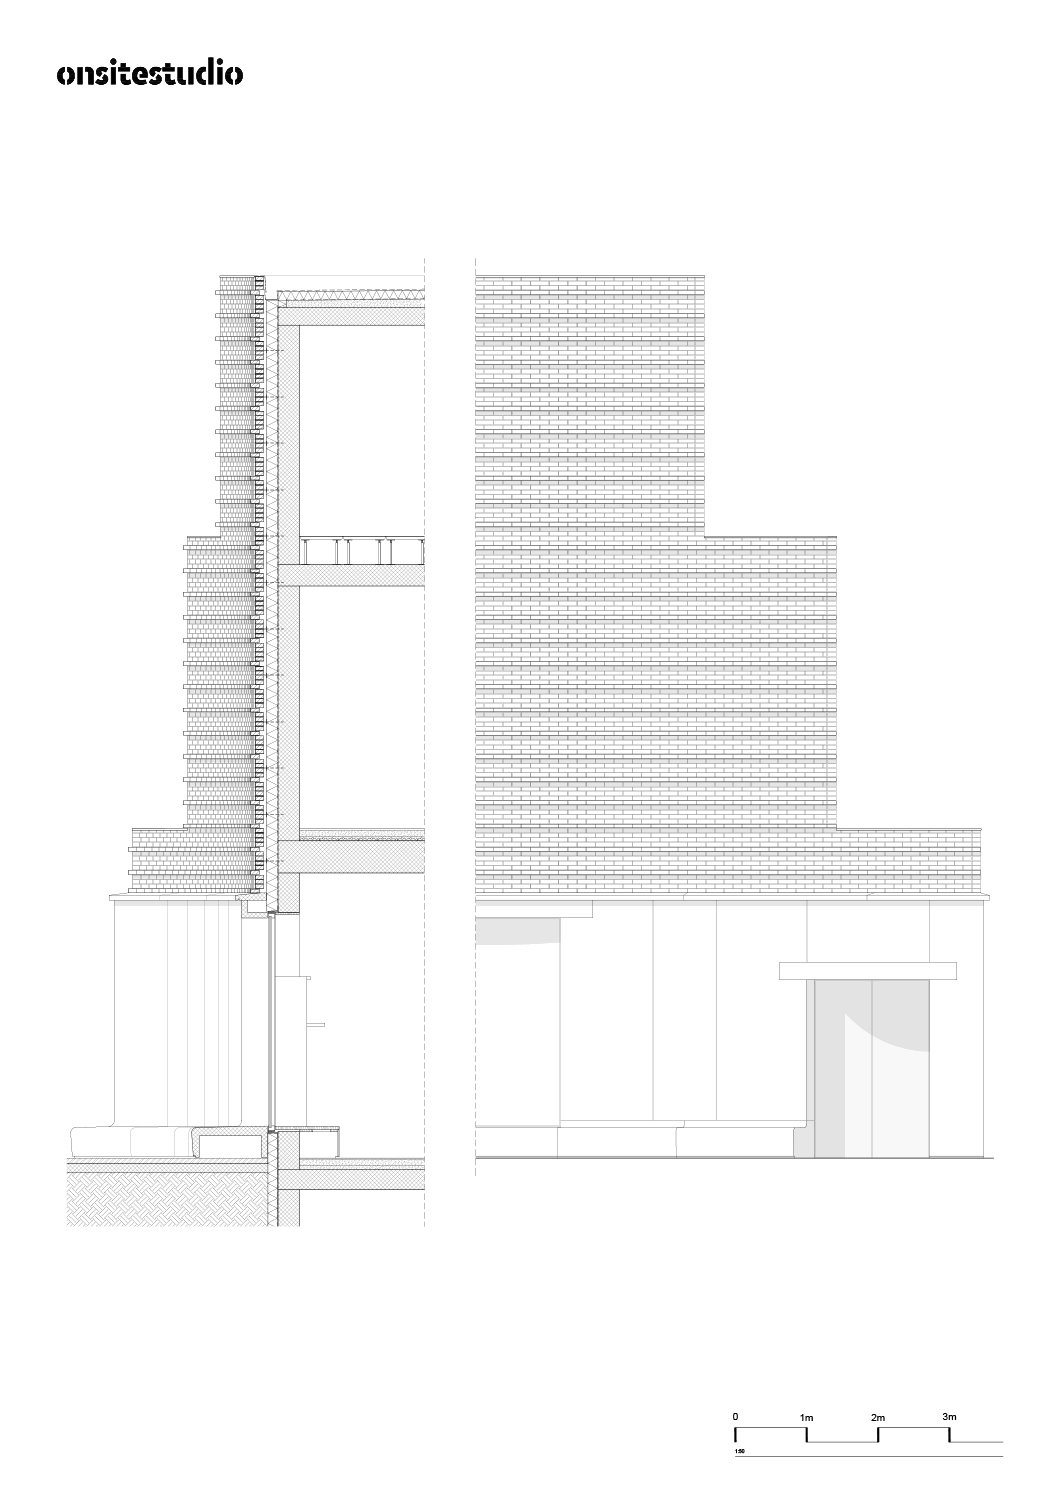 North facade detail section Onsitestudio}